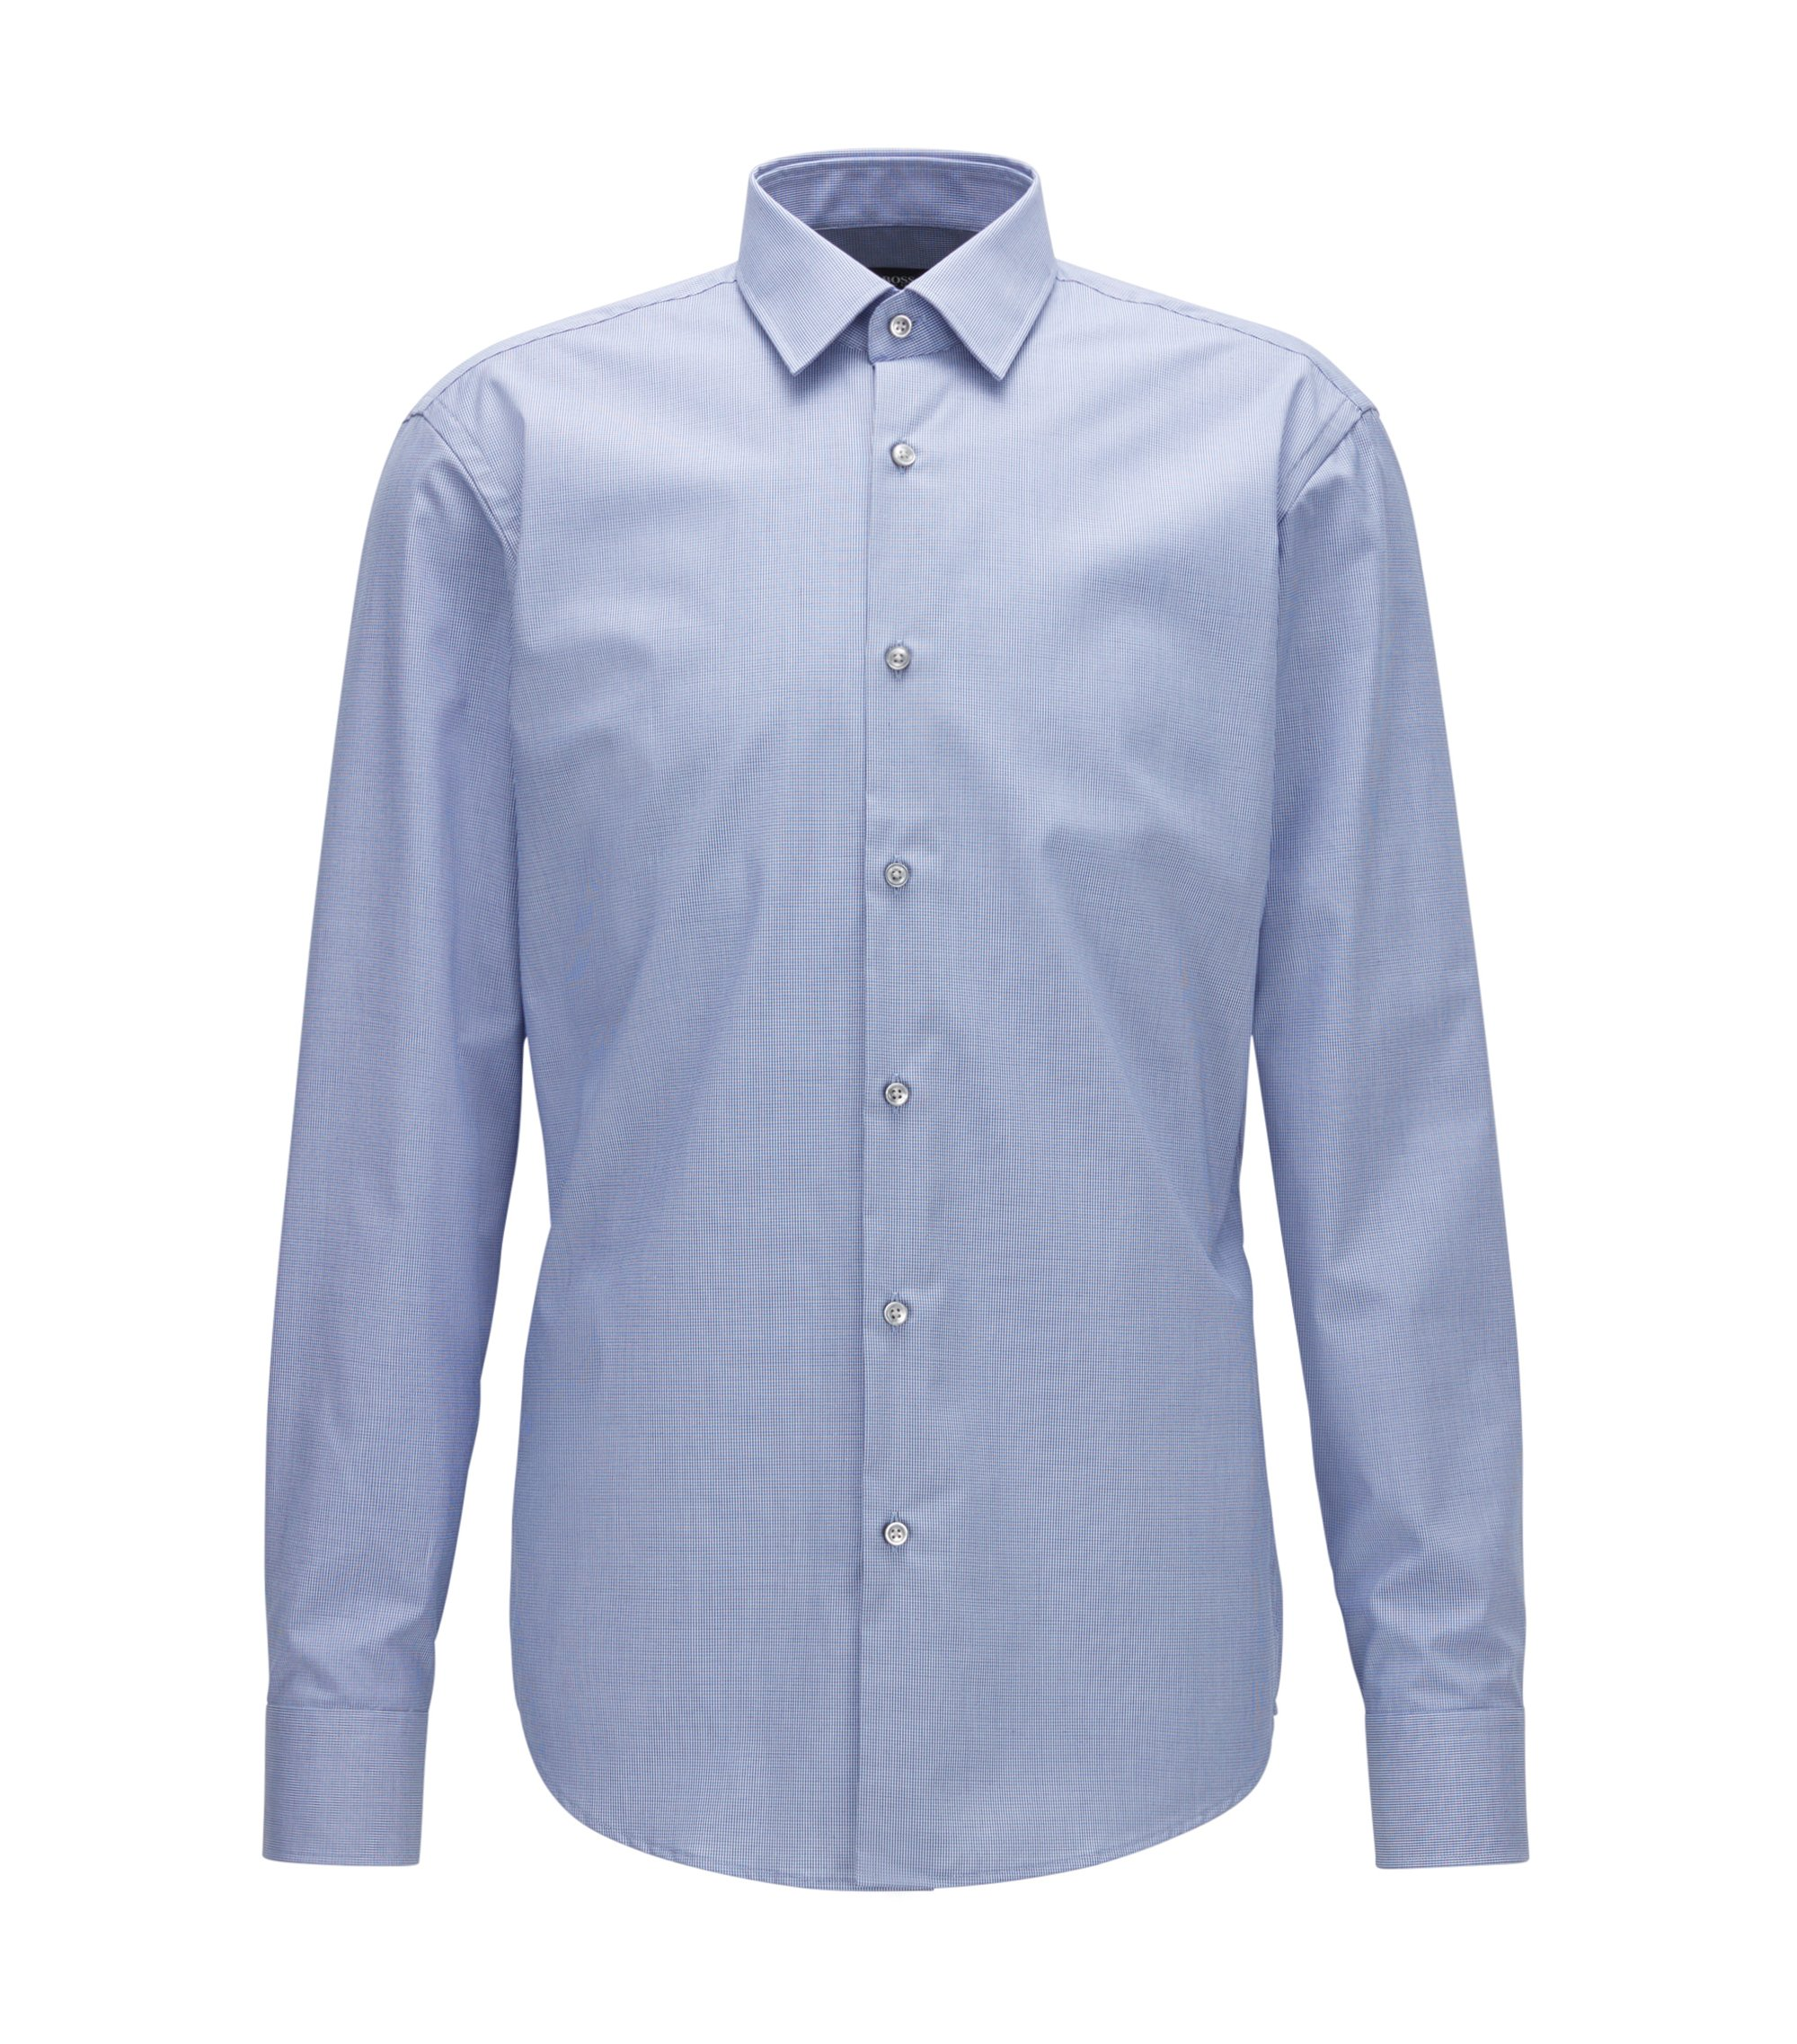 Camicia regular fit in cotone facile da stirare con motivo a quadretti bicolore, Celeste